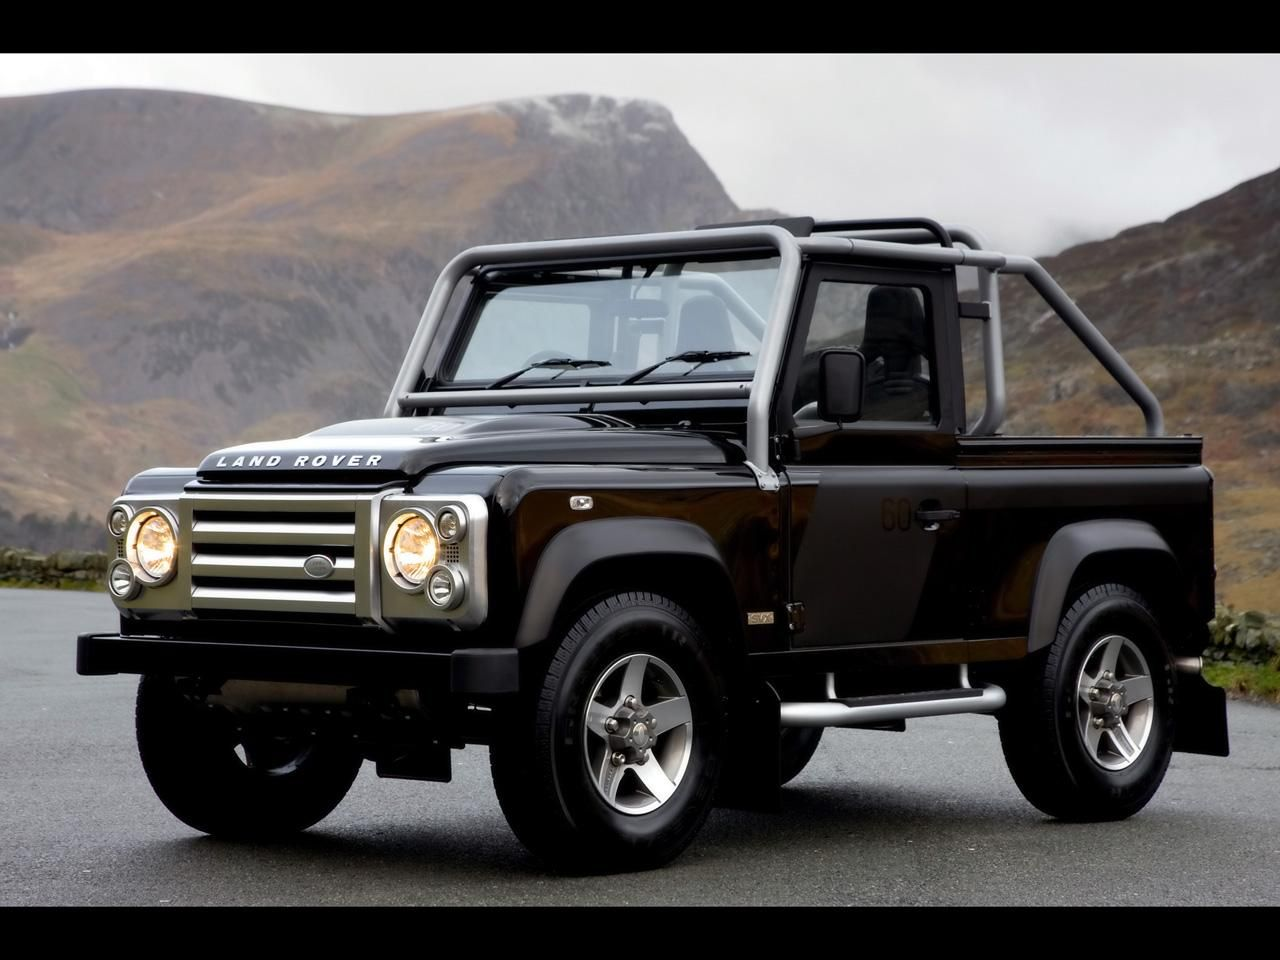 2018 land rover defender car price and reviews pinterest land rover defender land rovers and car prices